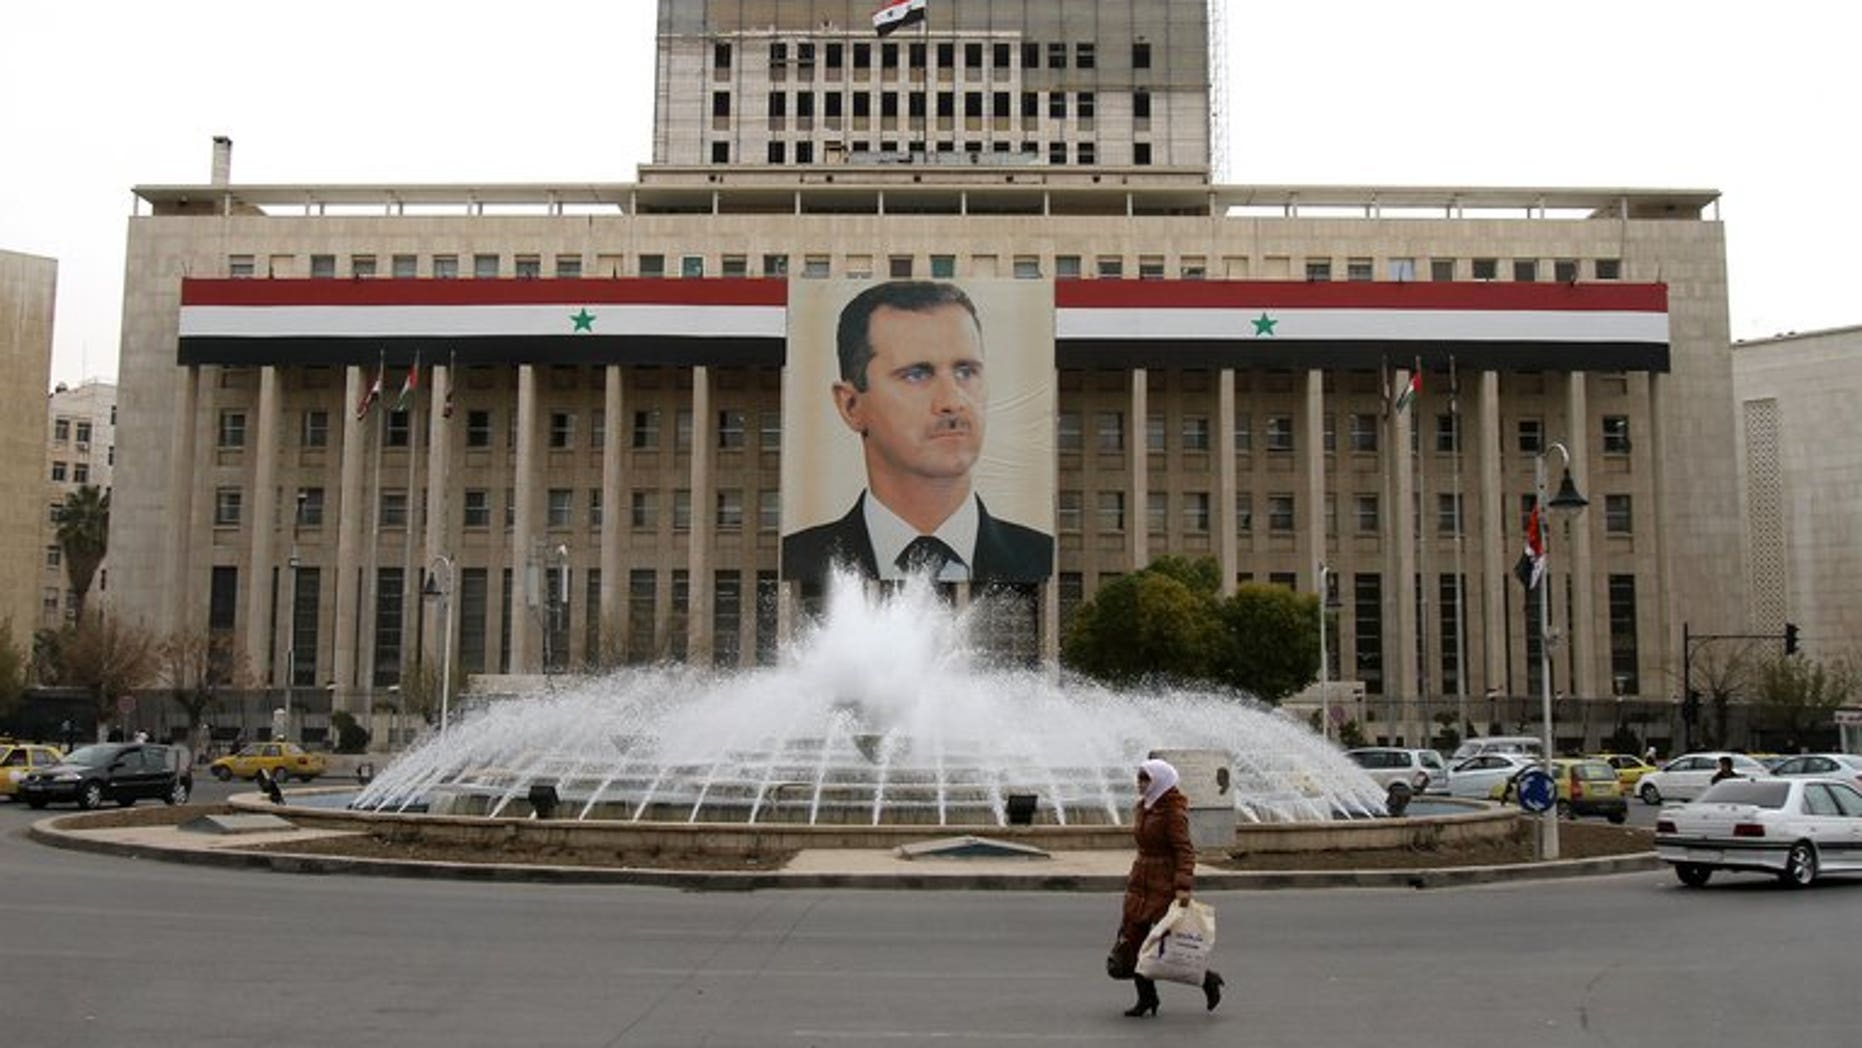 A woman walks past the central bank building decorated with a huge banner of President Bashar al-Assad in the capital in Damascus on February 28, 2012. Iran has agreed to supply Damascus with $3.6 billion in oil in exchange for the right to invest in the country, Syria's state news agency SANA said on Tuesday.